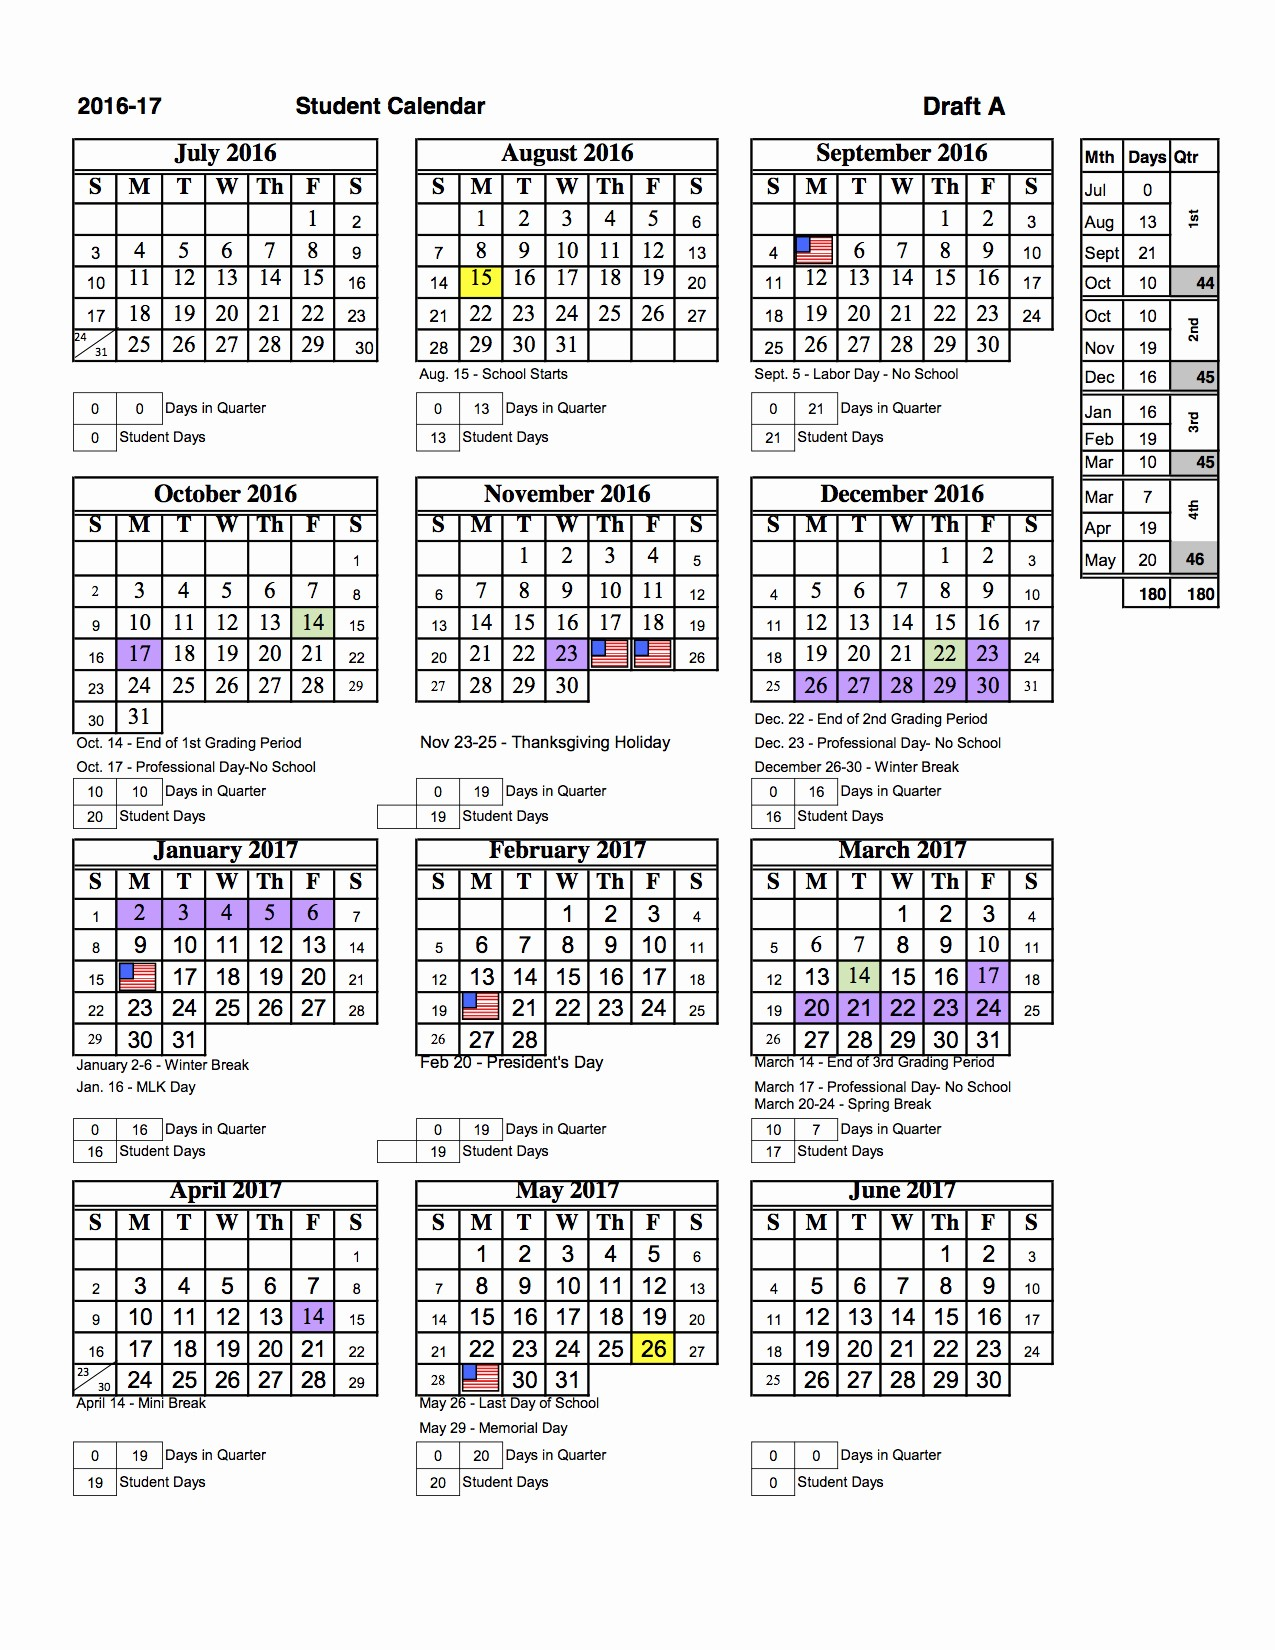 Calendar 2016-17 Template Fresh Sarasota County Students Will Return to Classes Earlier